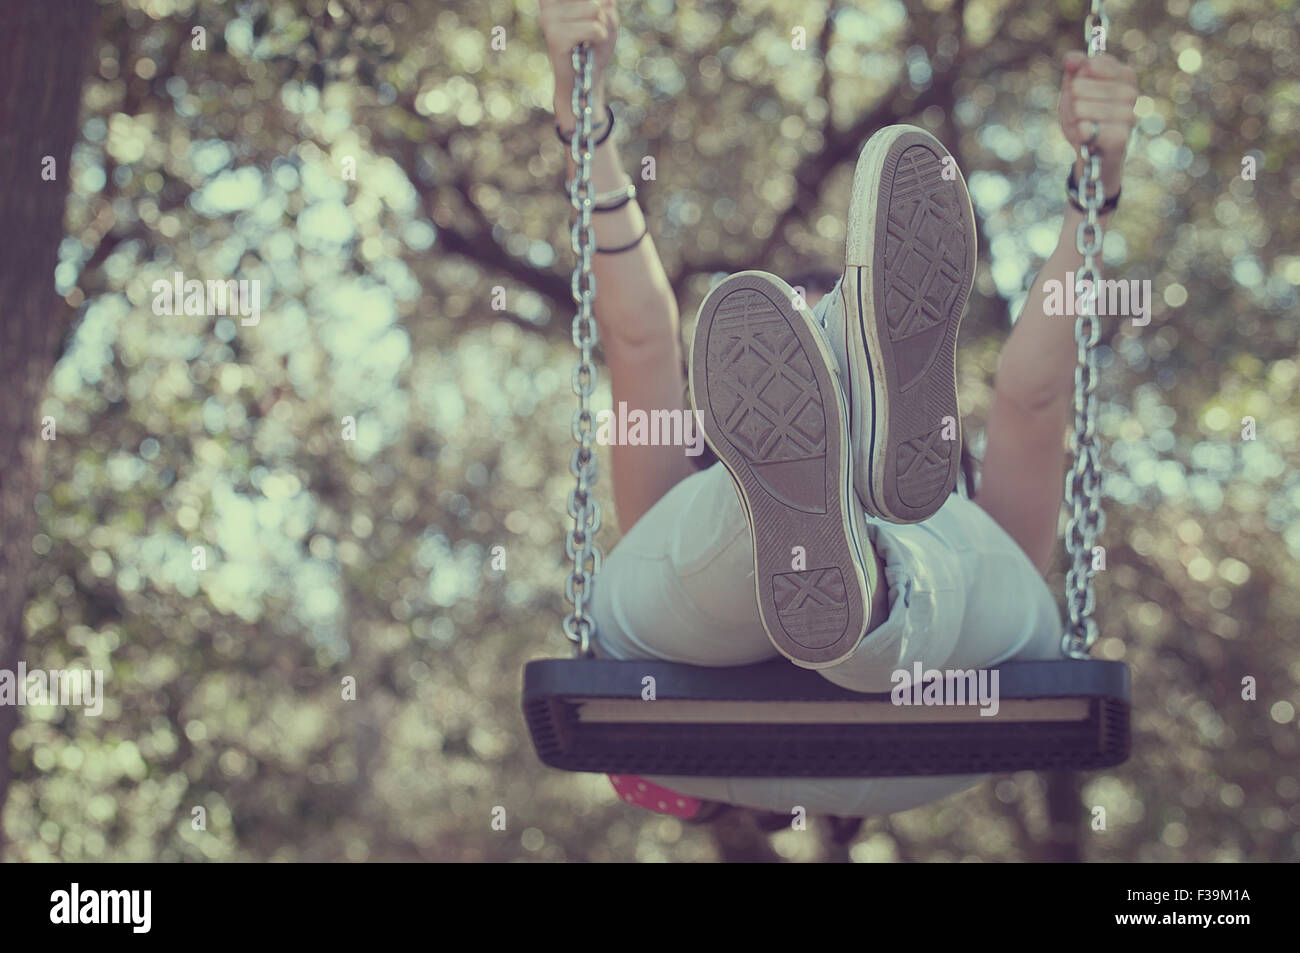 Low angle view of a teenage girl on a swing - Stock Image